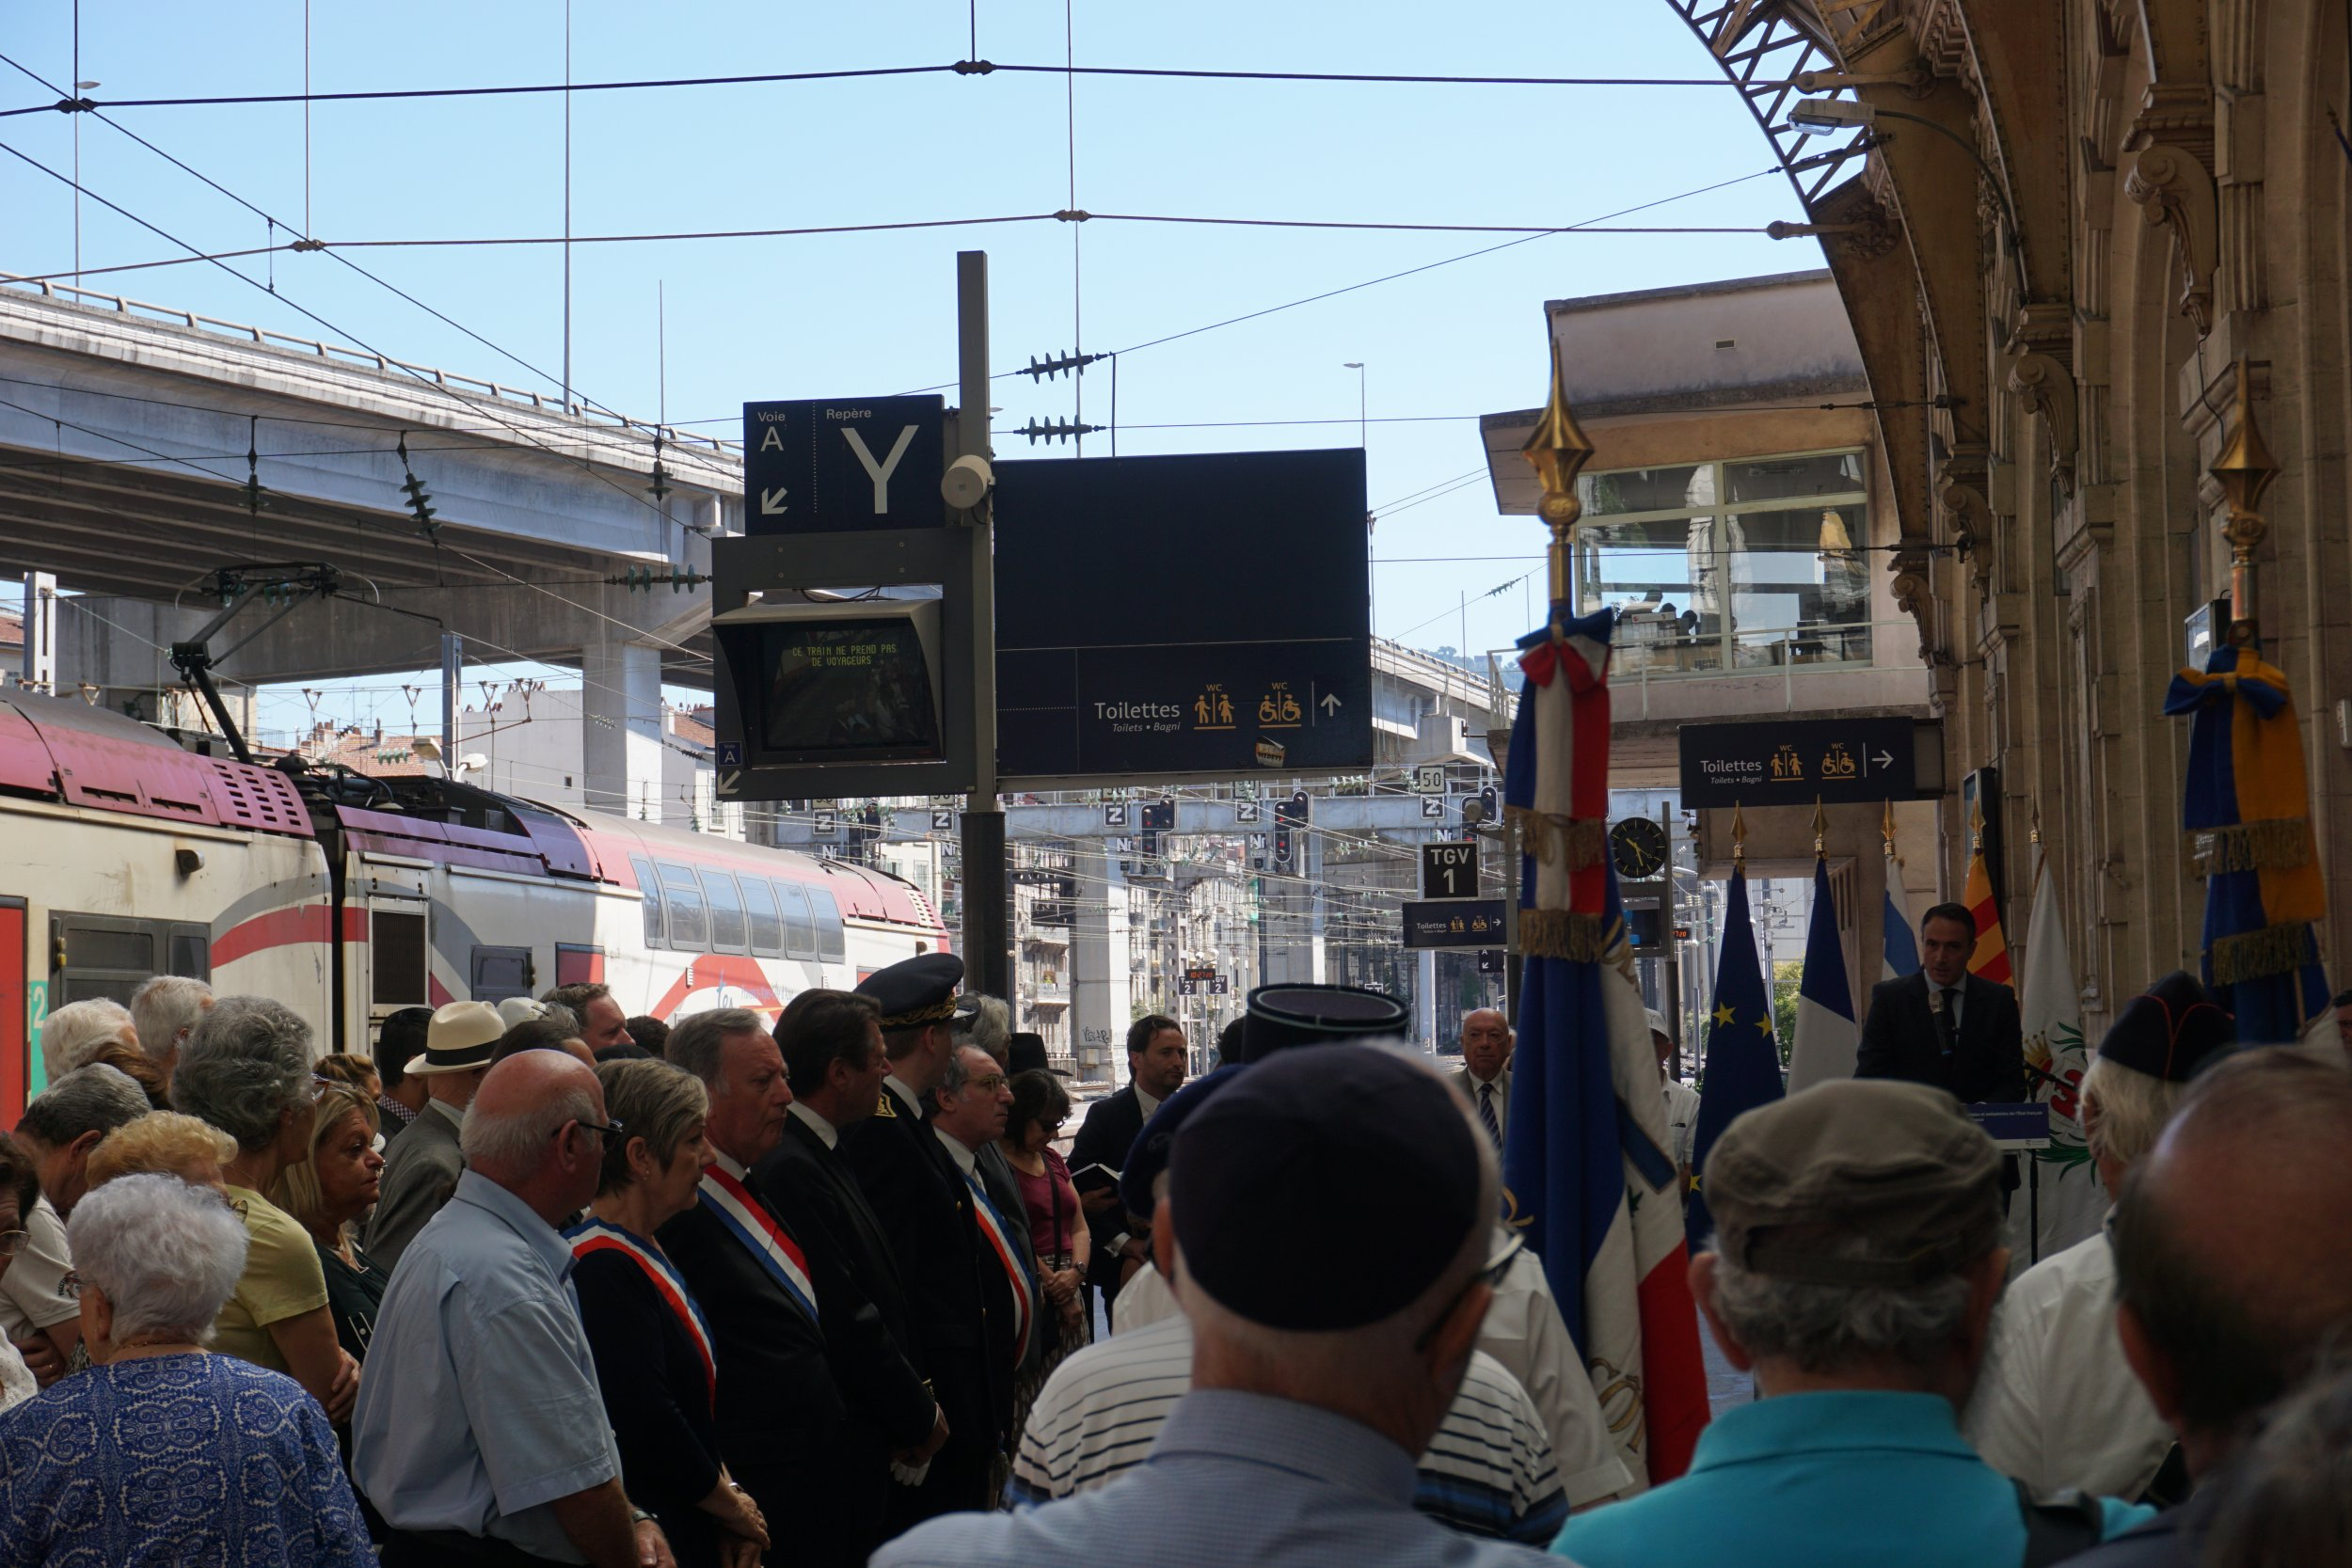 Jewish Memorial at Nice's Main Train Station